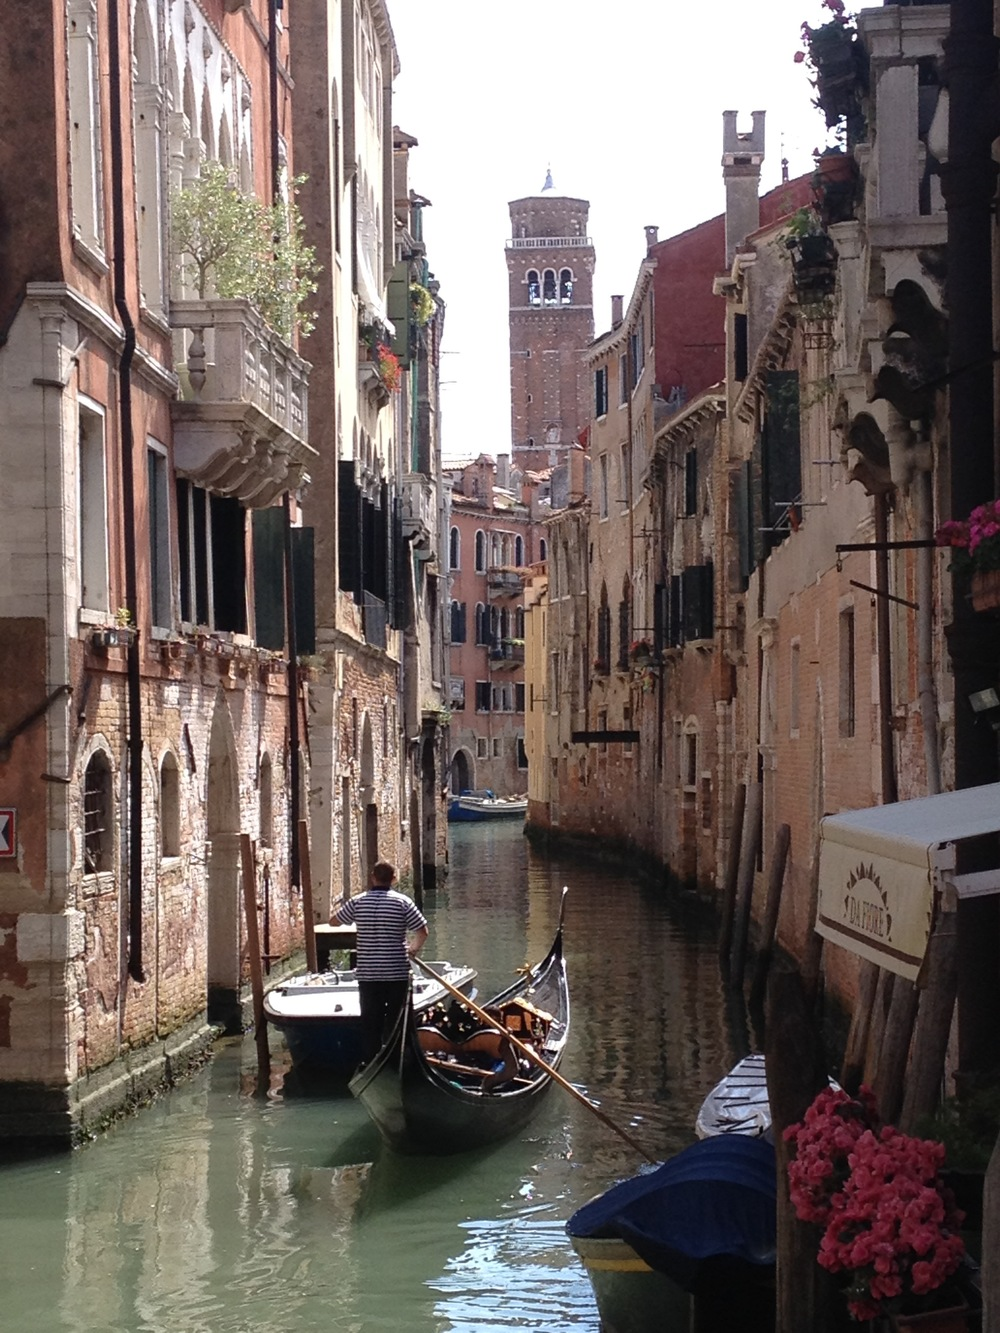 Venice. We had forgotten just what a picturesque city this is. No need here to set up a shot--just take the lens cap off and shoot.